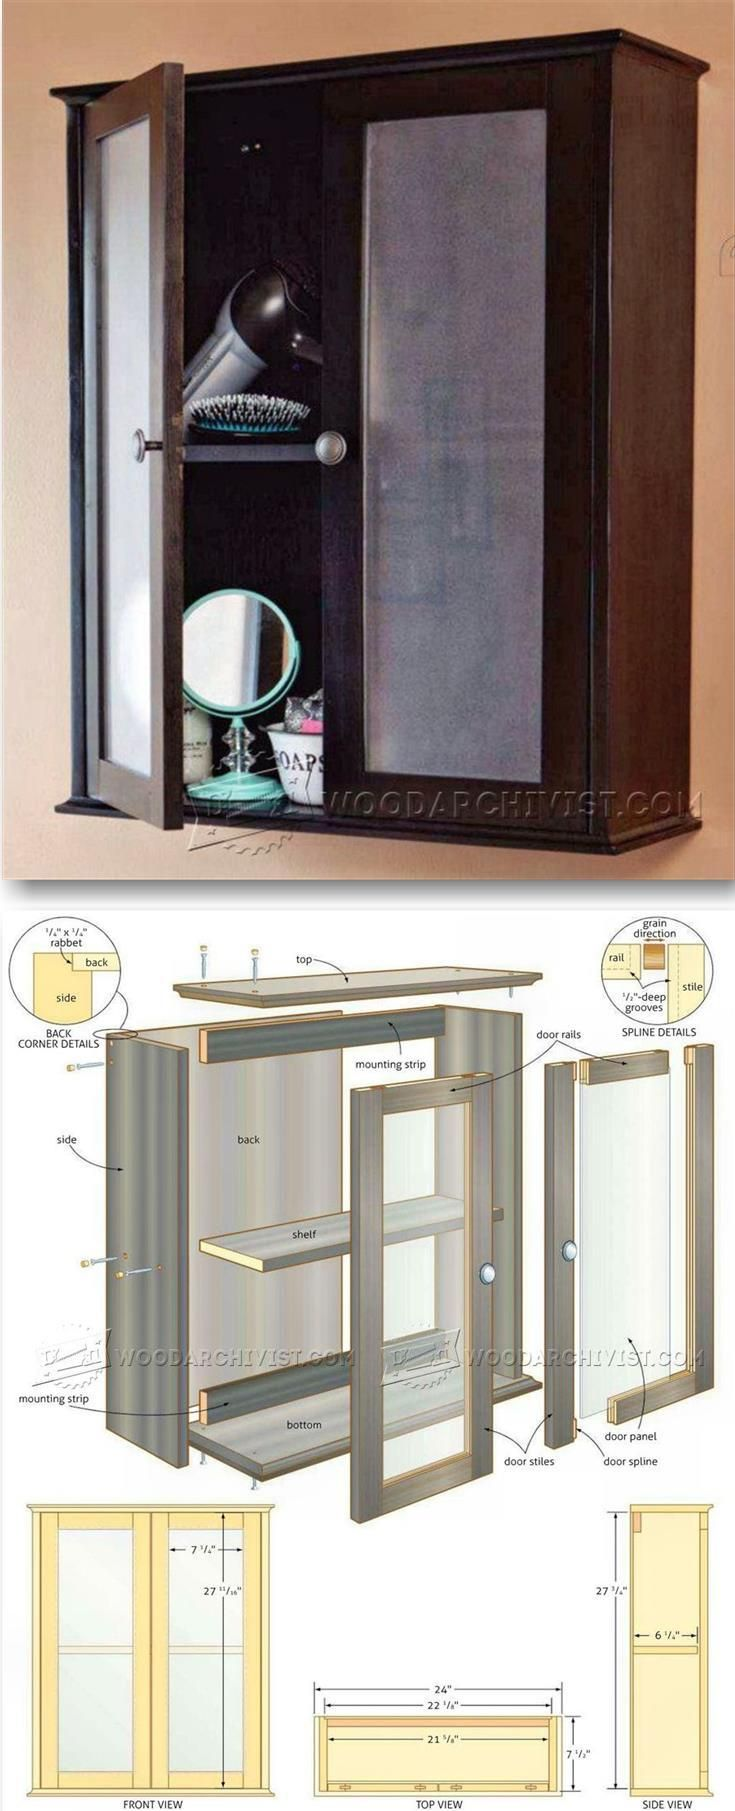 Bathroom wall plans furniture plans and projects